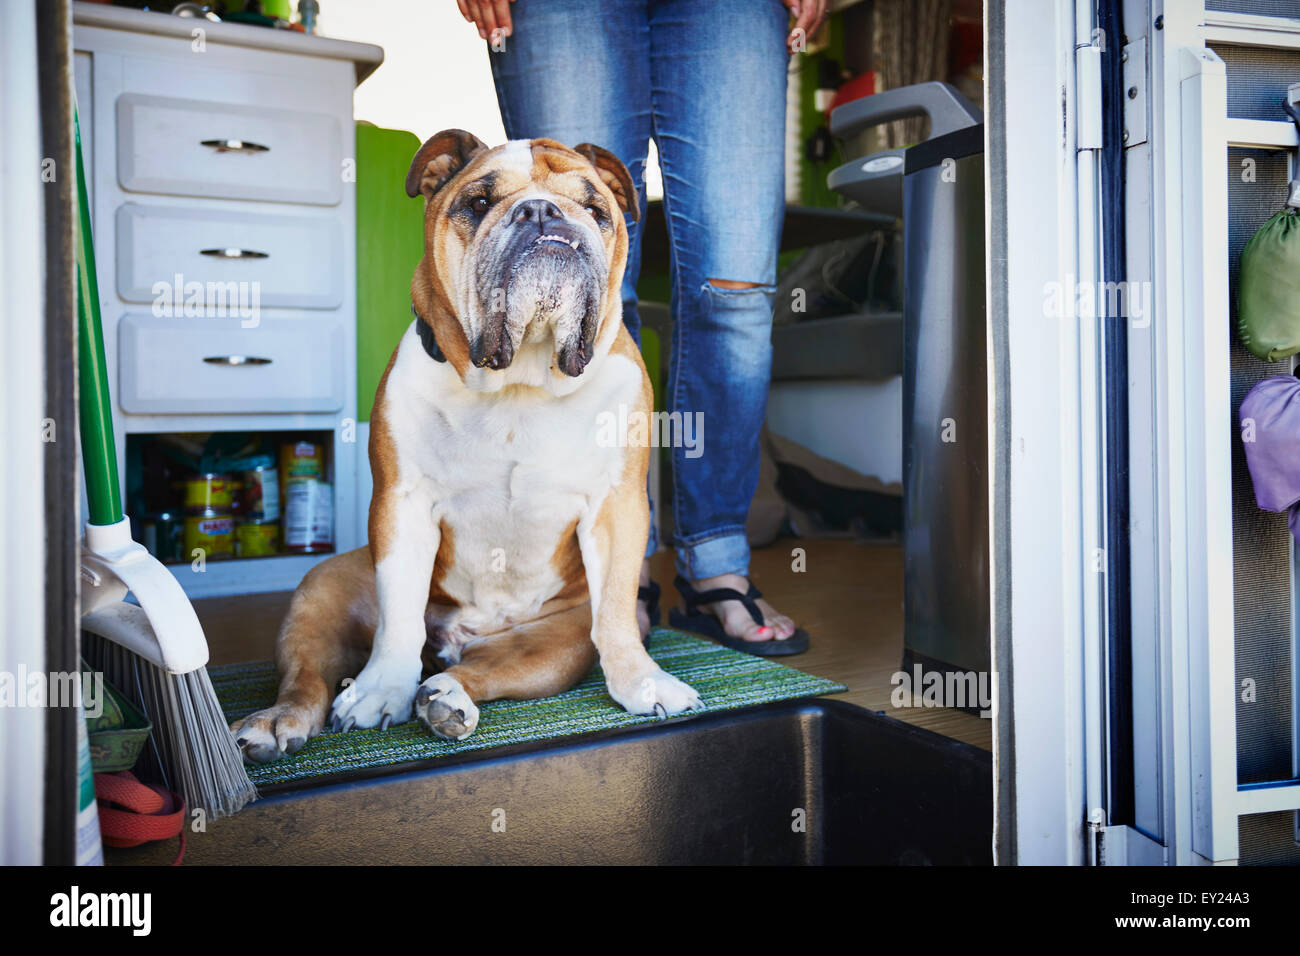 Portrait of bulldog and womans legs in trailer doorway - Stock Image